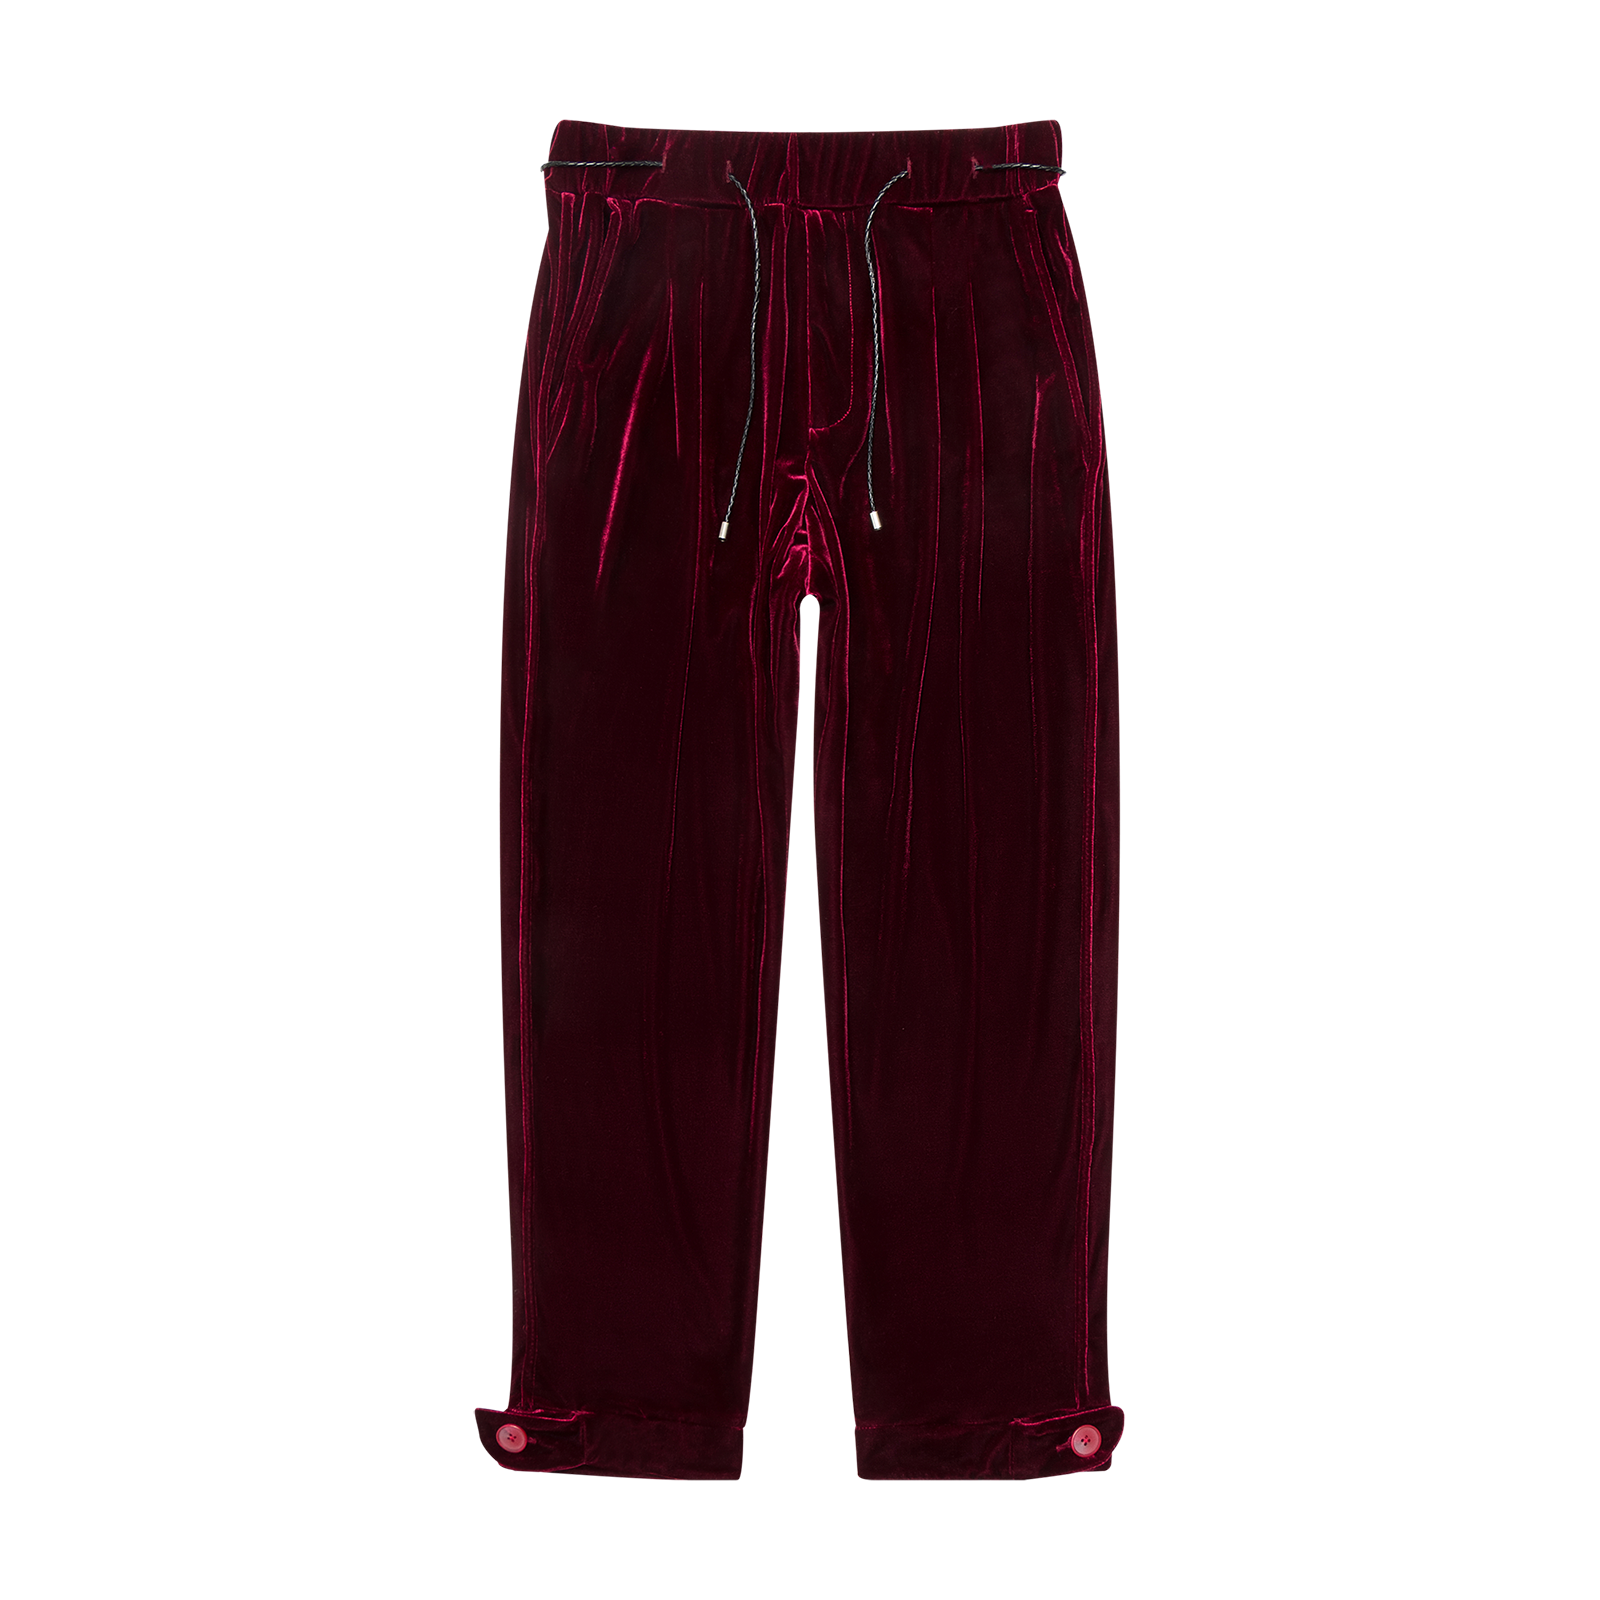 Flat lay trousers product photo